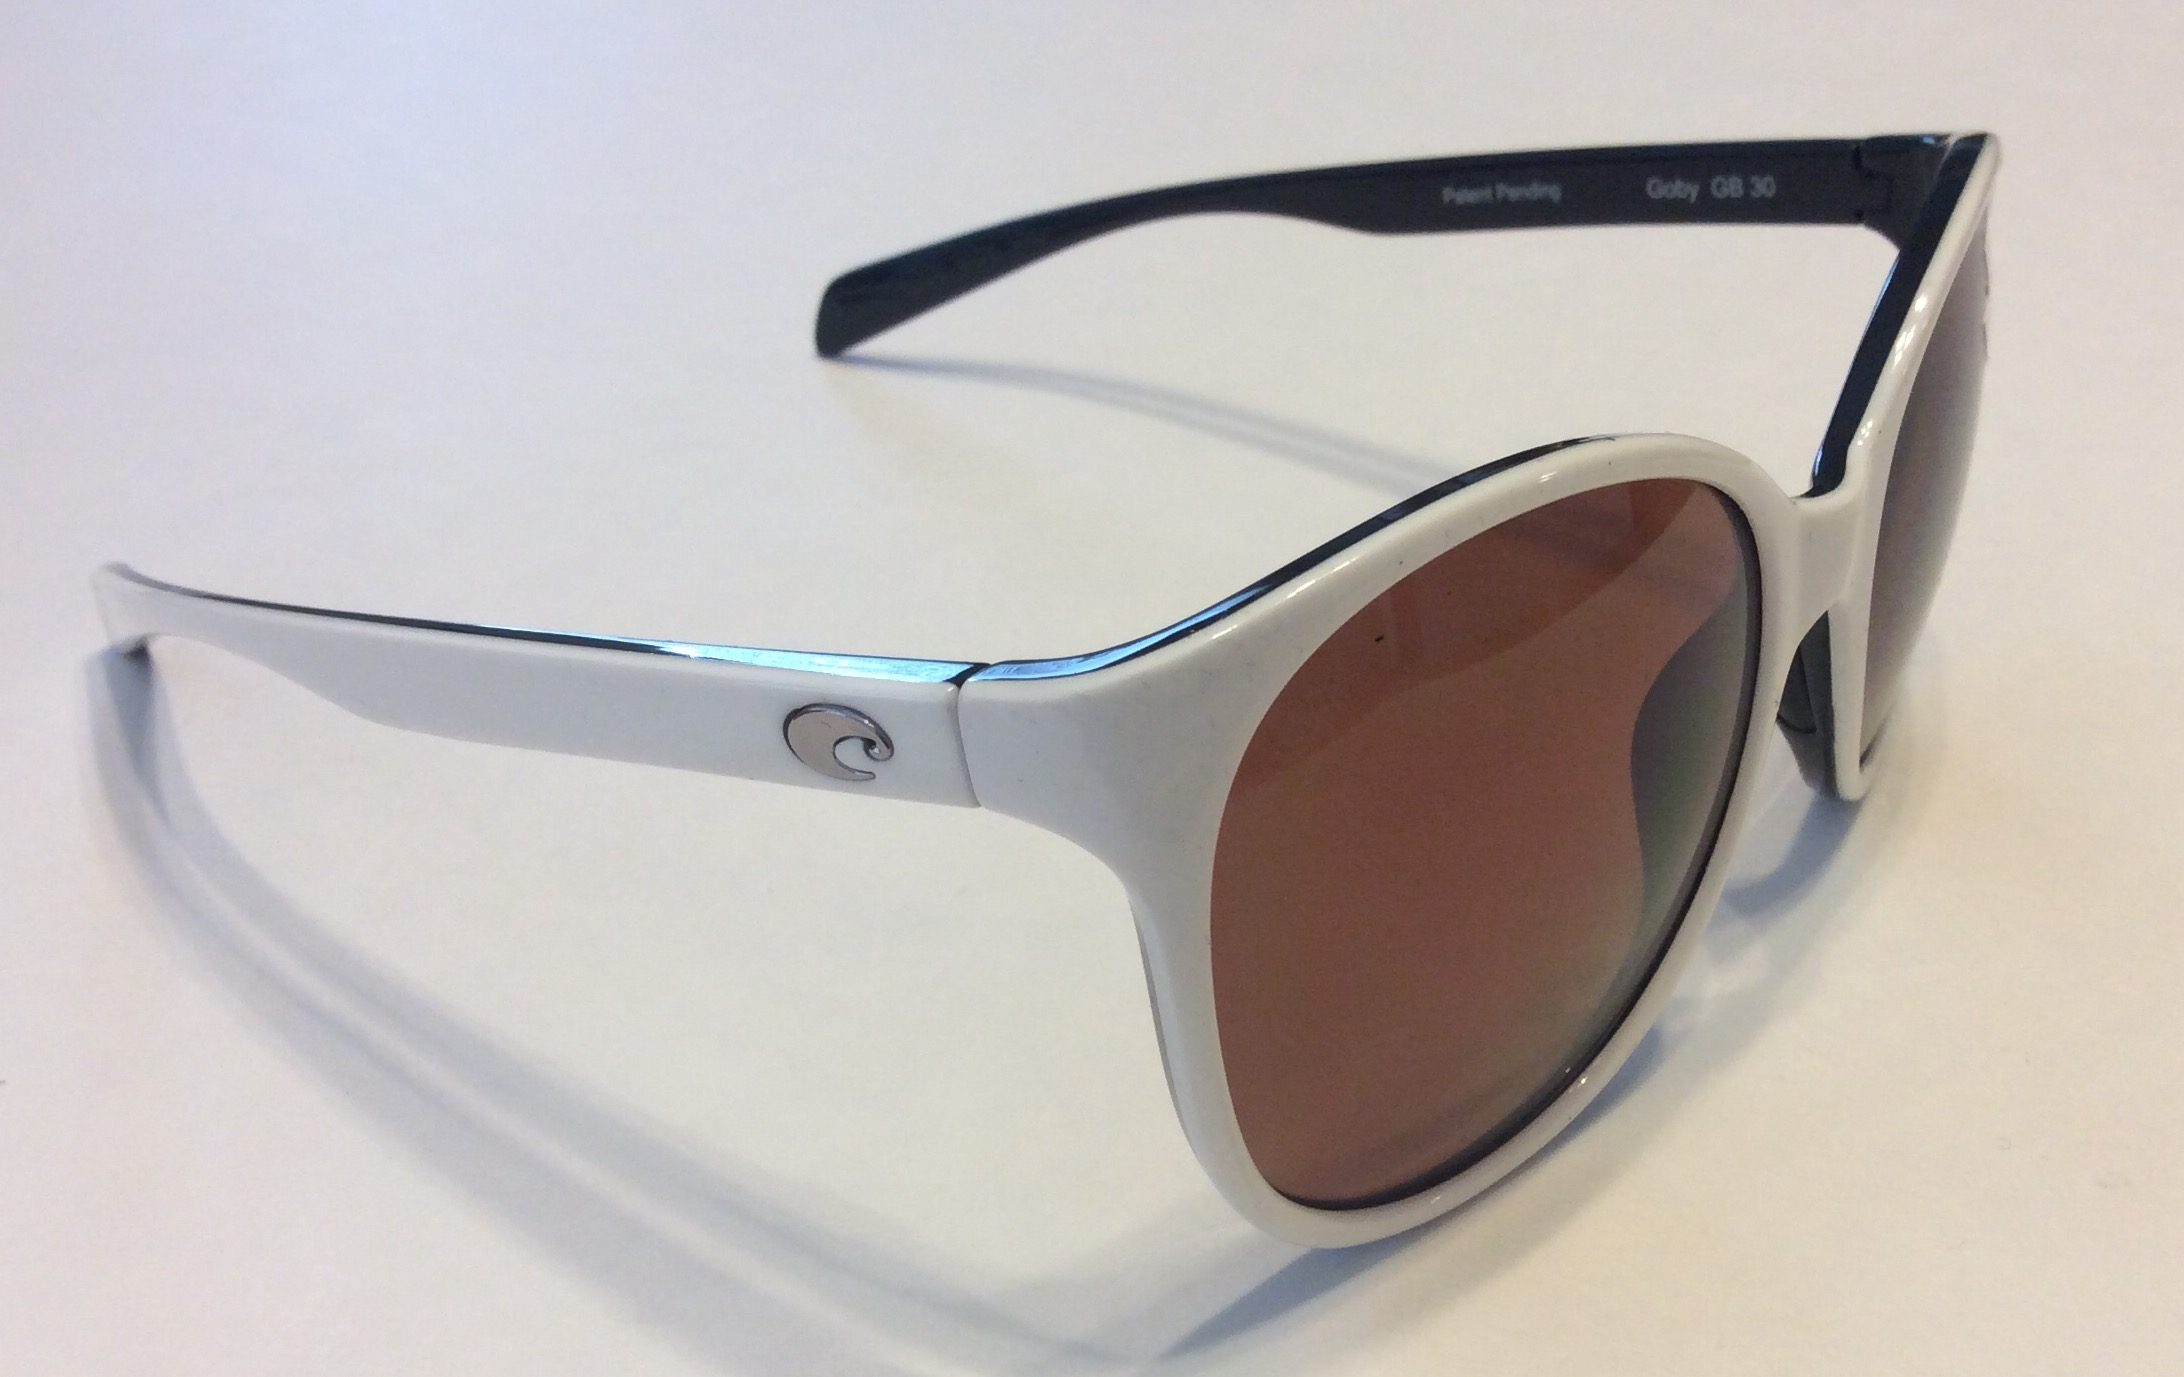 sunglasses polarised wsjk  explain how a pair of polarized sunglasses reduce glare